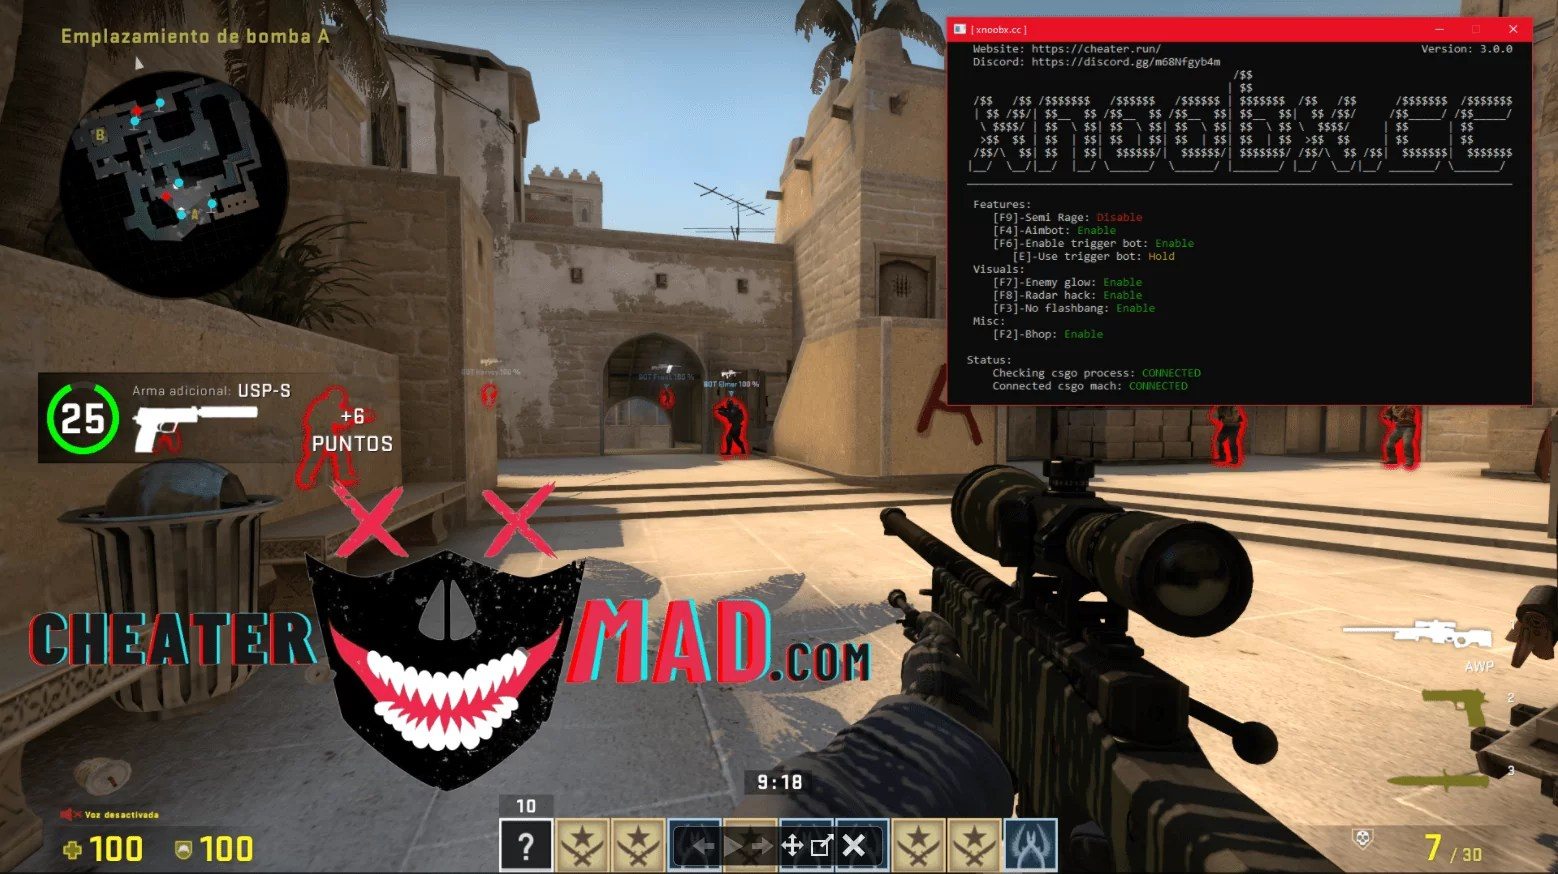 CS:GO External Hack - Aimbot, Bhop and more... - Download CS:GO External Hack - Aimbot, Bhop and more... for FREE - Free Cheats for Games